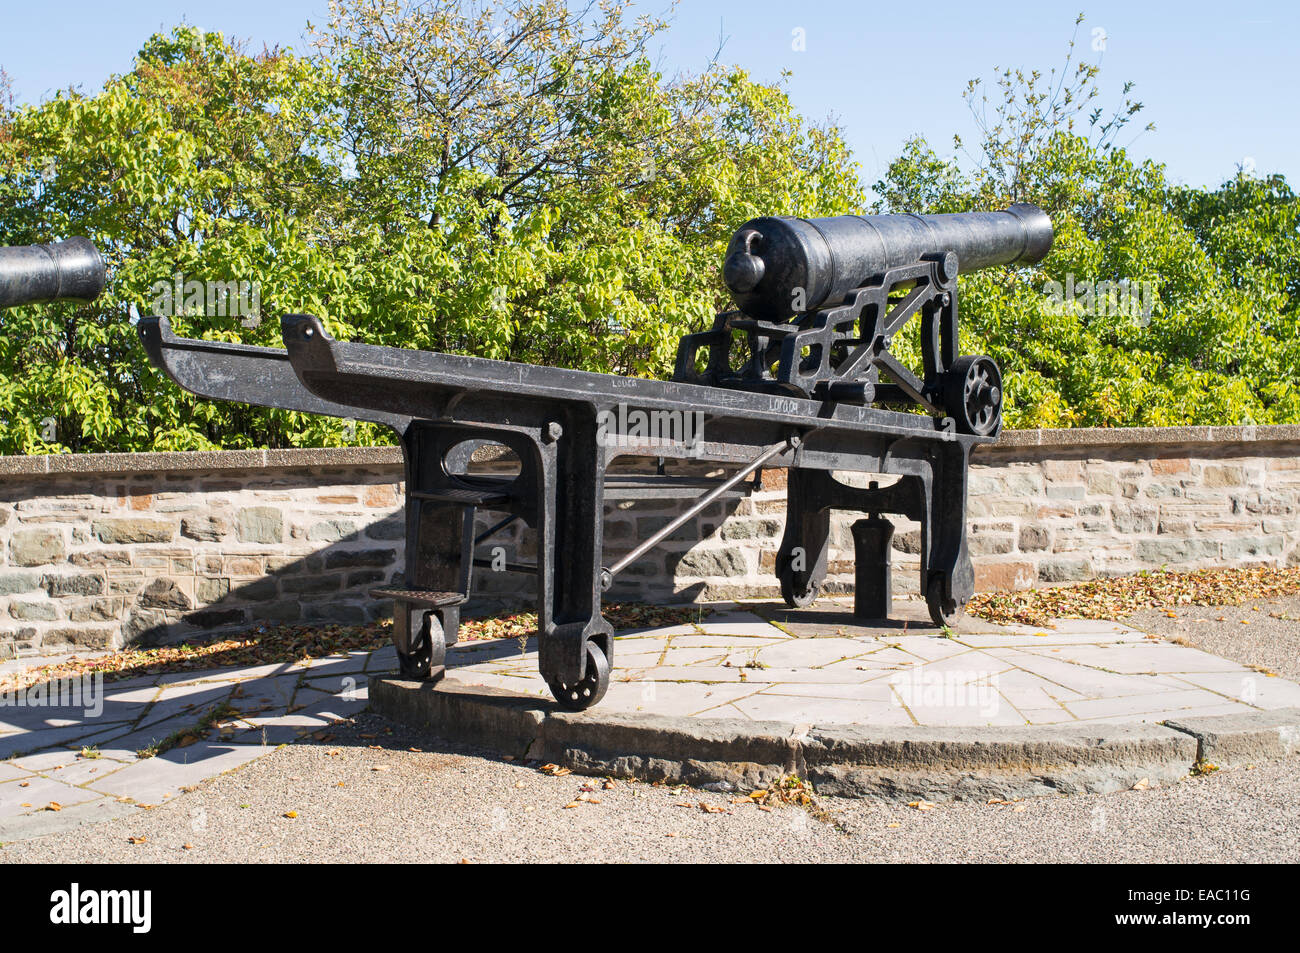 Old British cannon mounted on swiveling carriage, part of the Quebec battery, Canada. - Stock Image